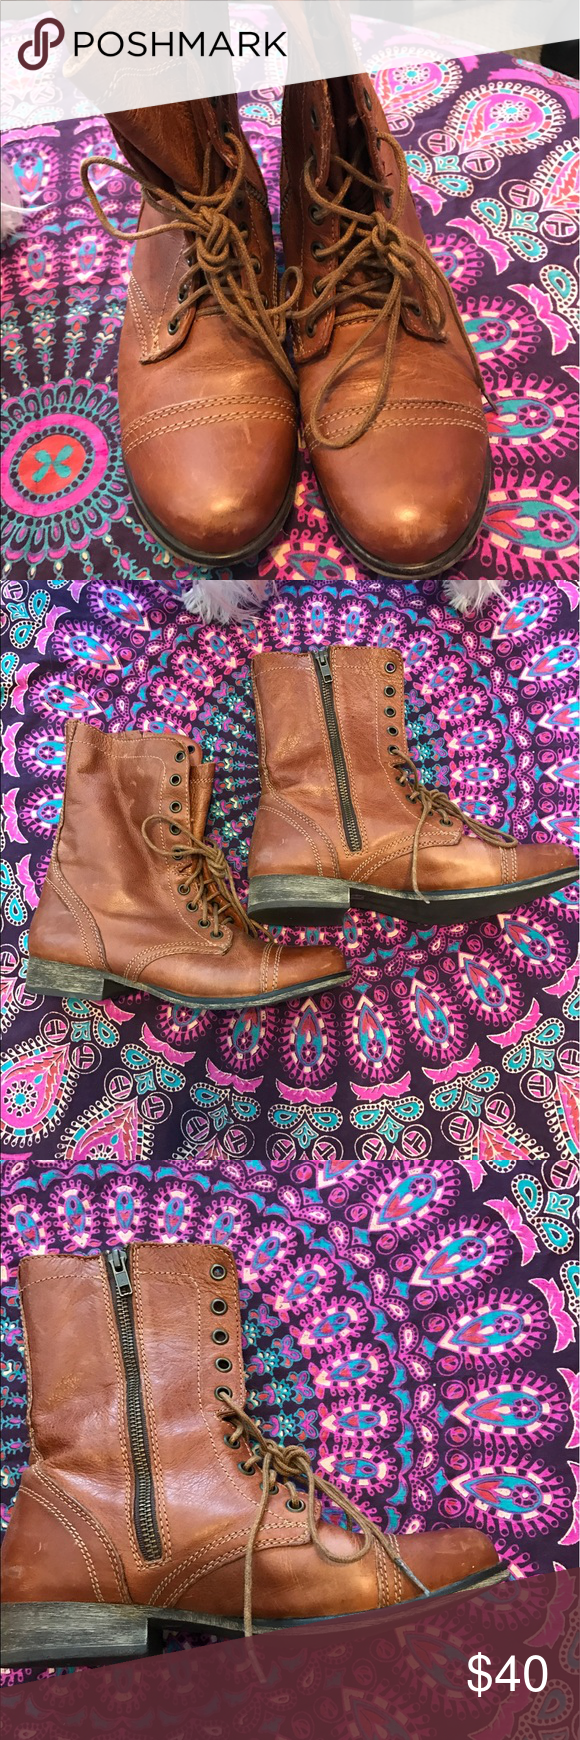 Steve Madden women's Troopa boots Never worn Steve Madden Troopa lace up boots in brown leather. Steve Madden Shoes Combat & Moto Boots